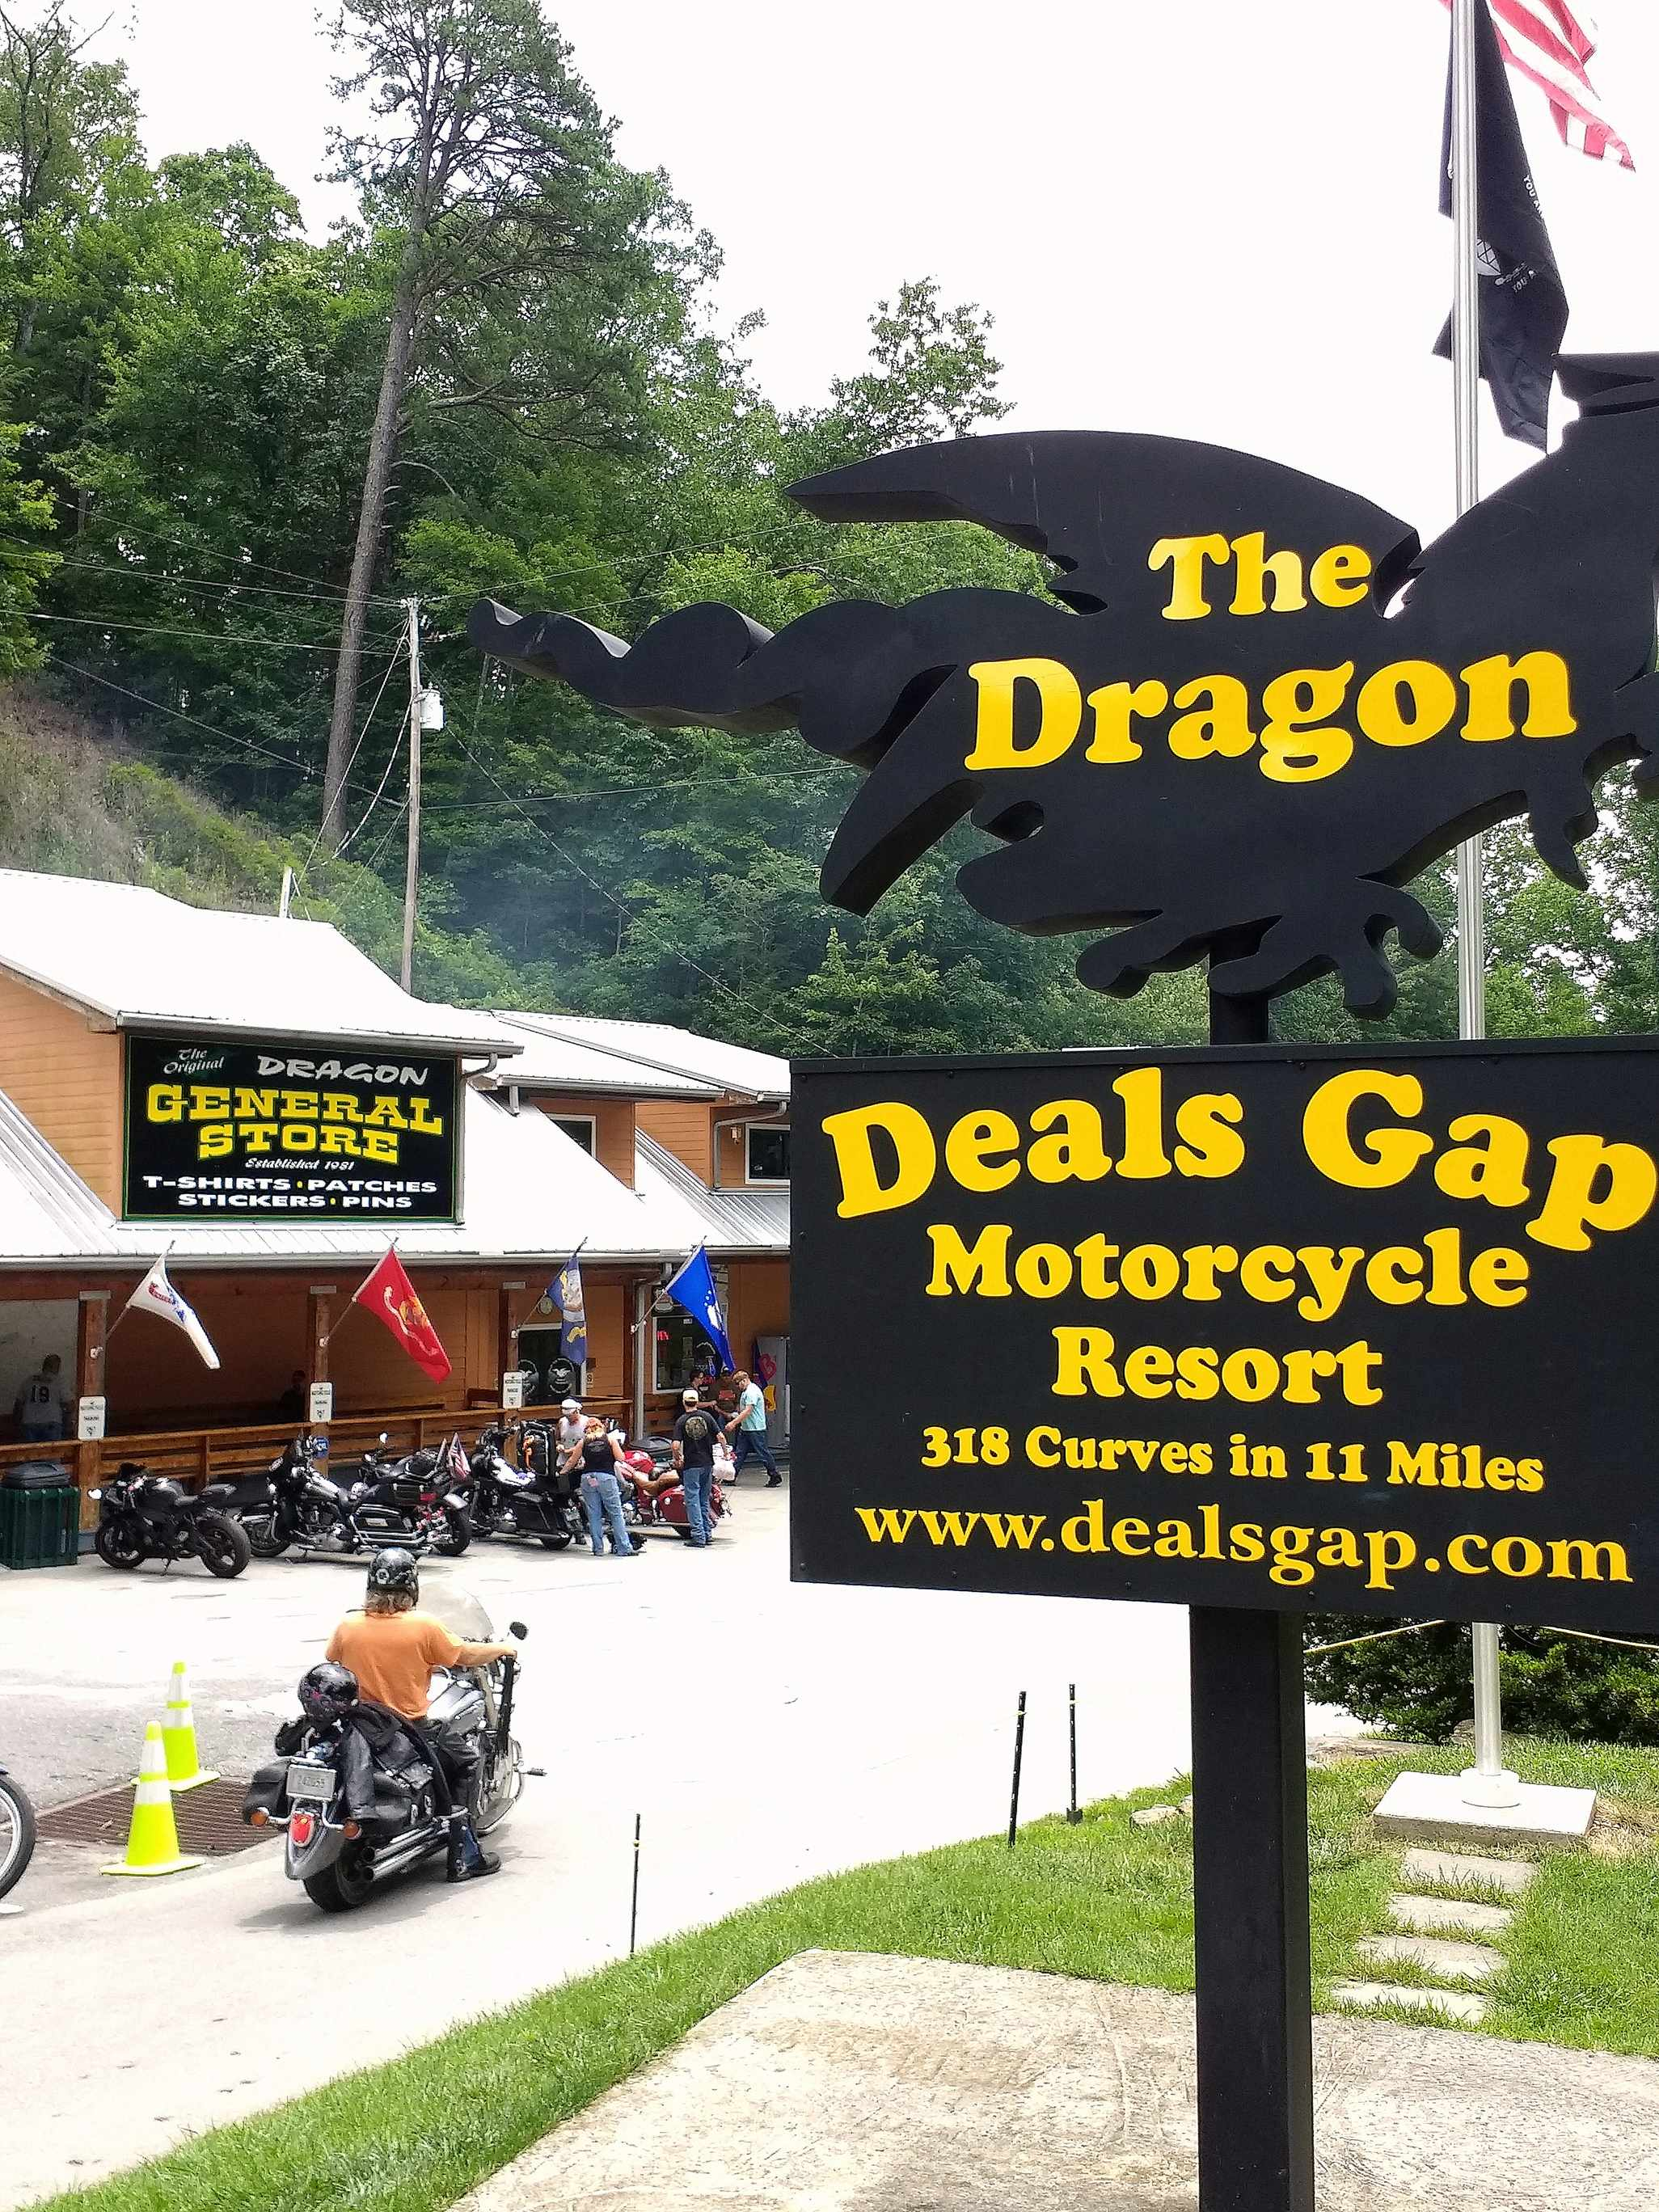 Tail Of The Dragon On Rt Deals Gap Motorcycle Resort Has A Sign Stating There Are 318 Curves In 11 Miles